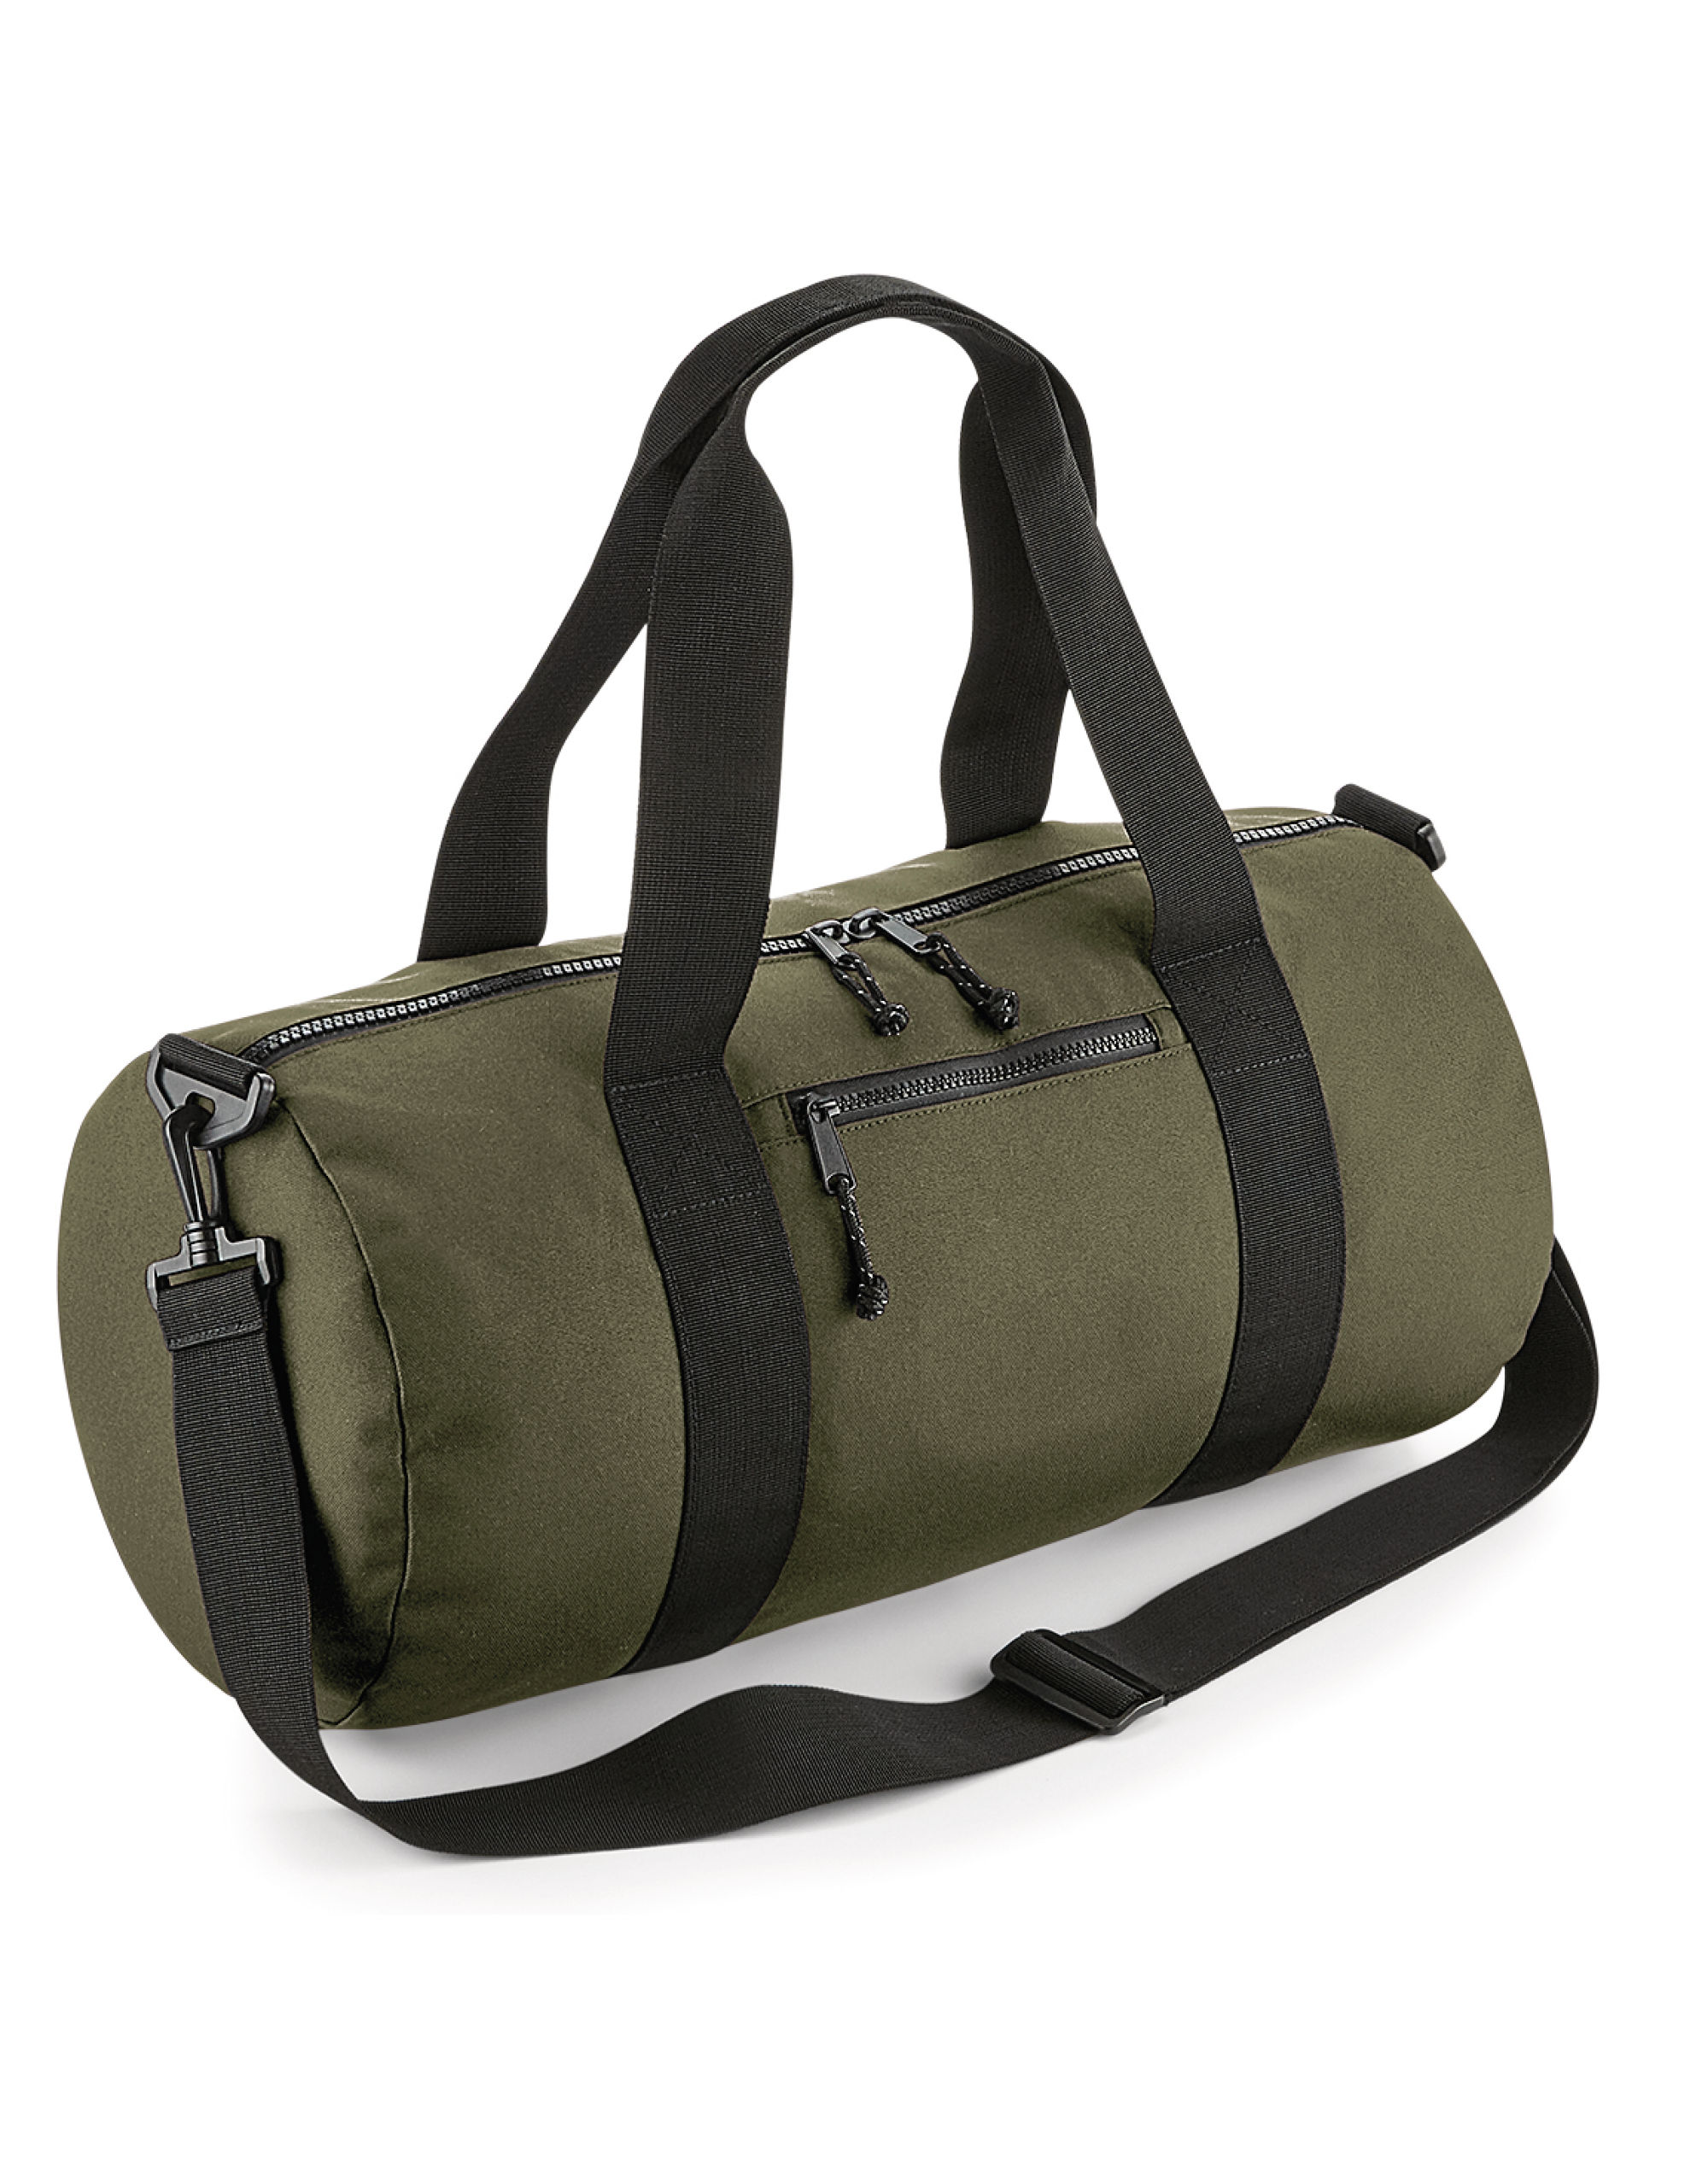 Bagbase Recycled Barrel Bag